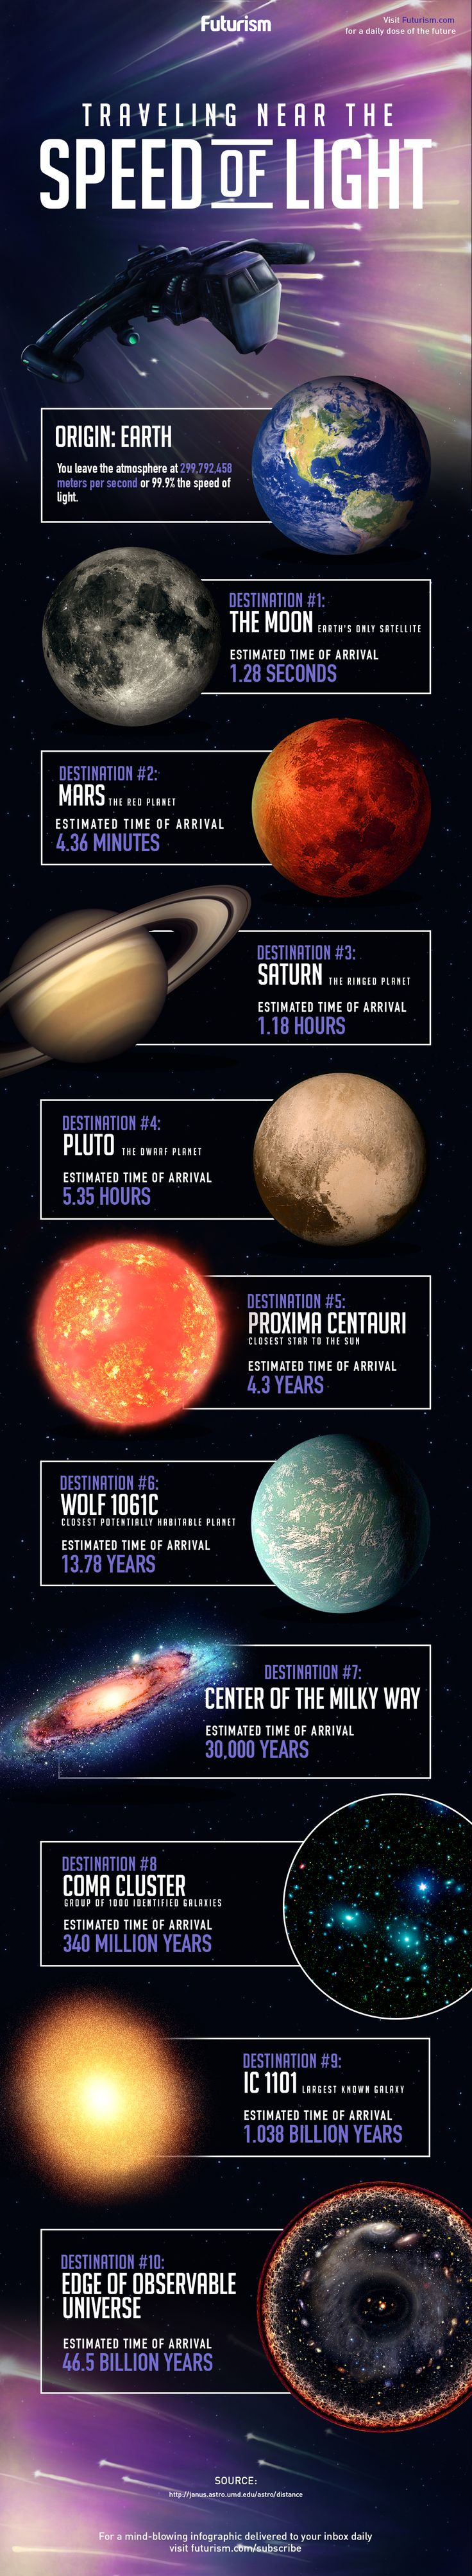 If you could travel at 99.9% the speed of light, how long would it take you to get to the Moon? Mars? The nearest star? Hop aboard our interstellar starship and find out! http://futurism.com/images/traveling-near-the-speed-of-light-infographic/?utm_campaign=coschedule&utm_source=pinterest&utm_medium=Futurism&utm_content=Traveling%20Near%20The%20Speed%20Of%20Light%20%5BInfographic%5D